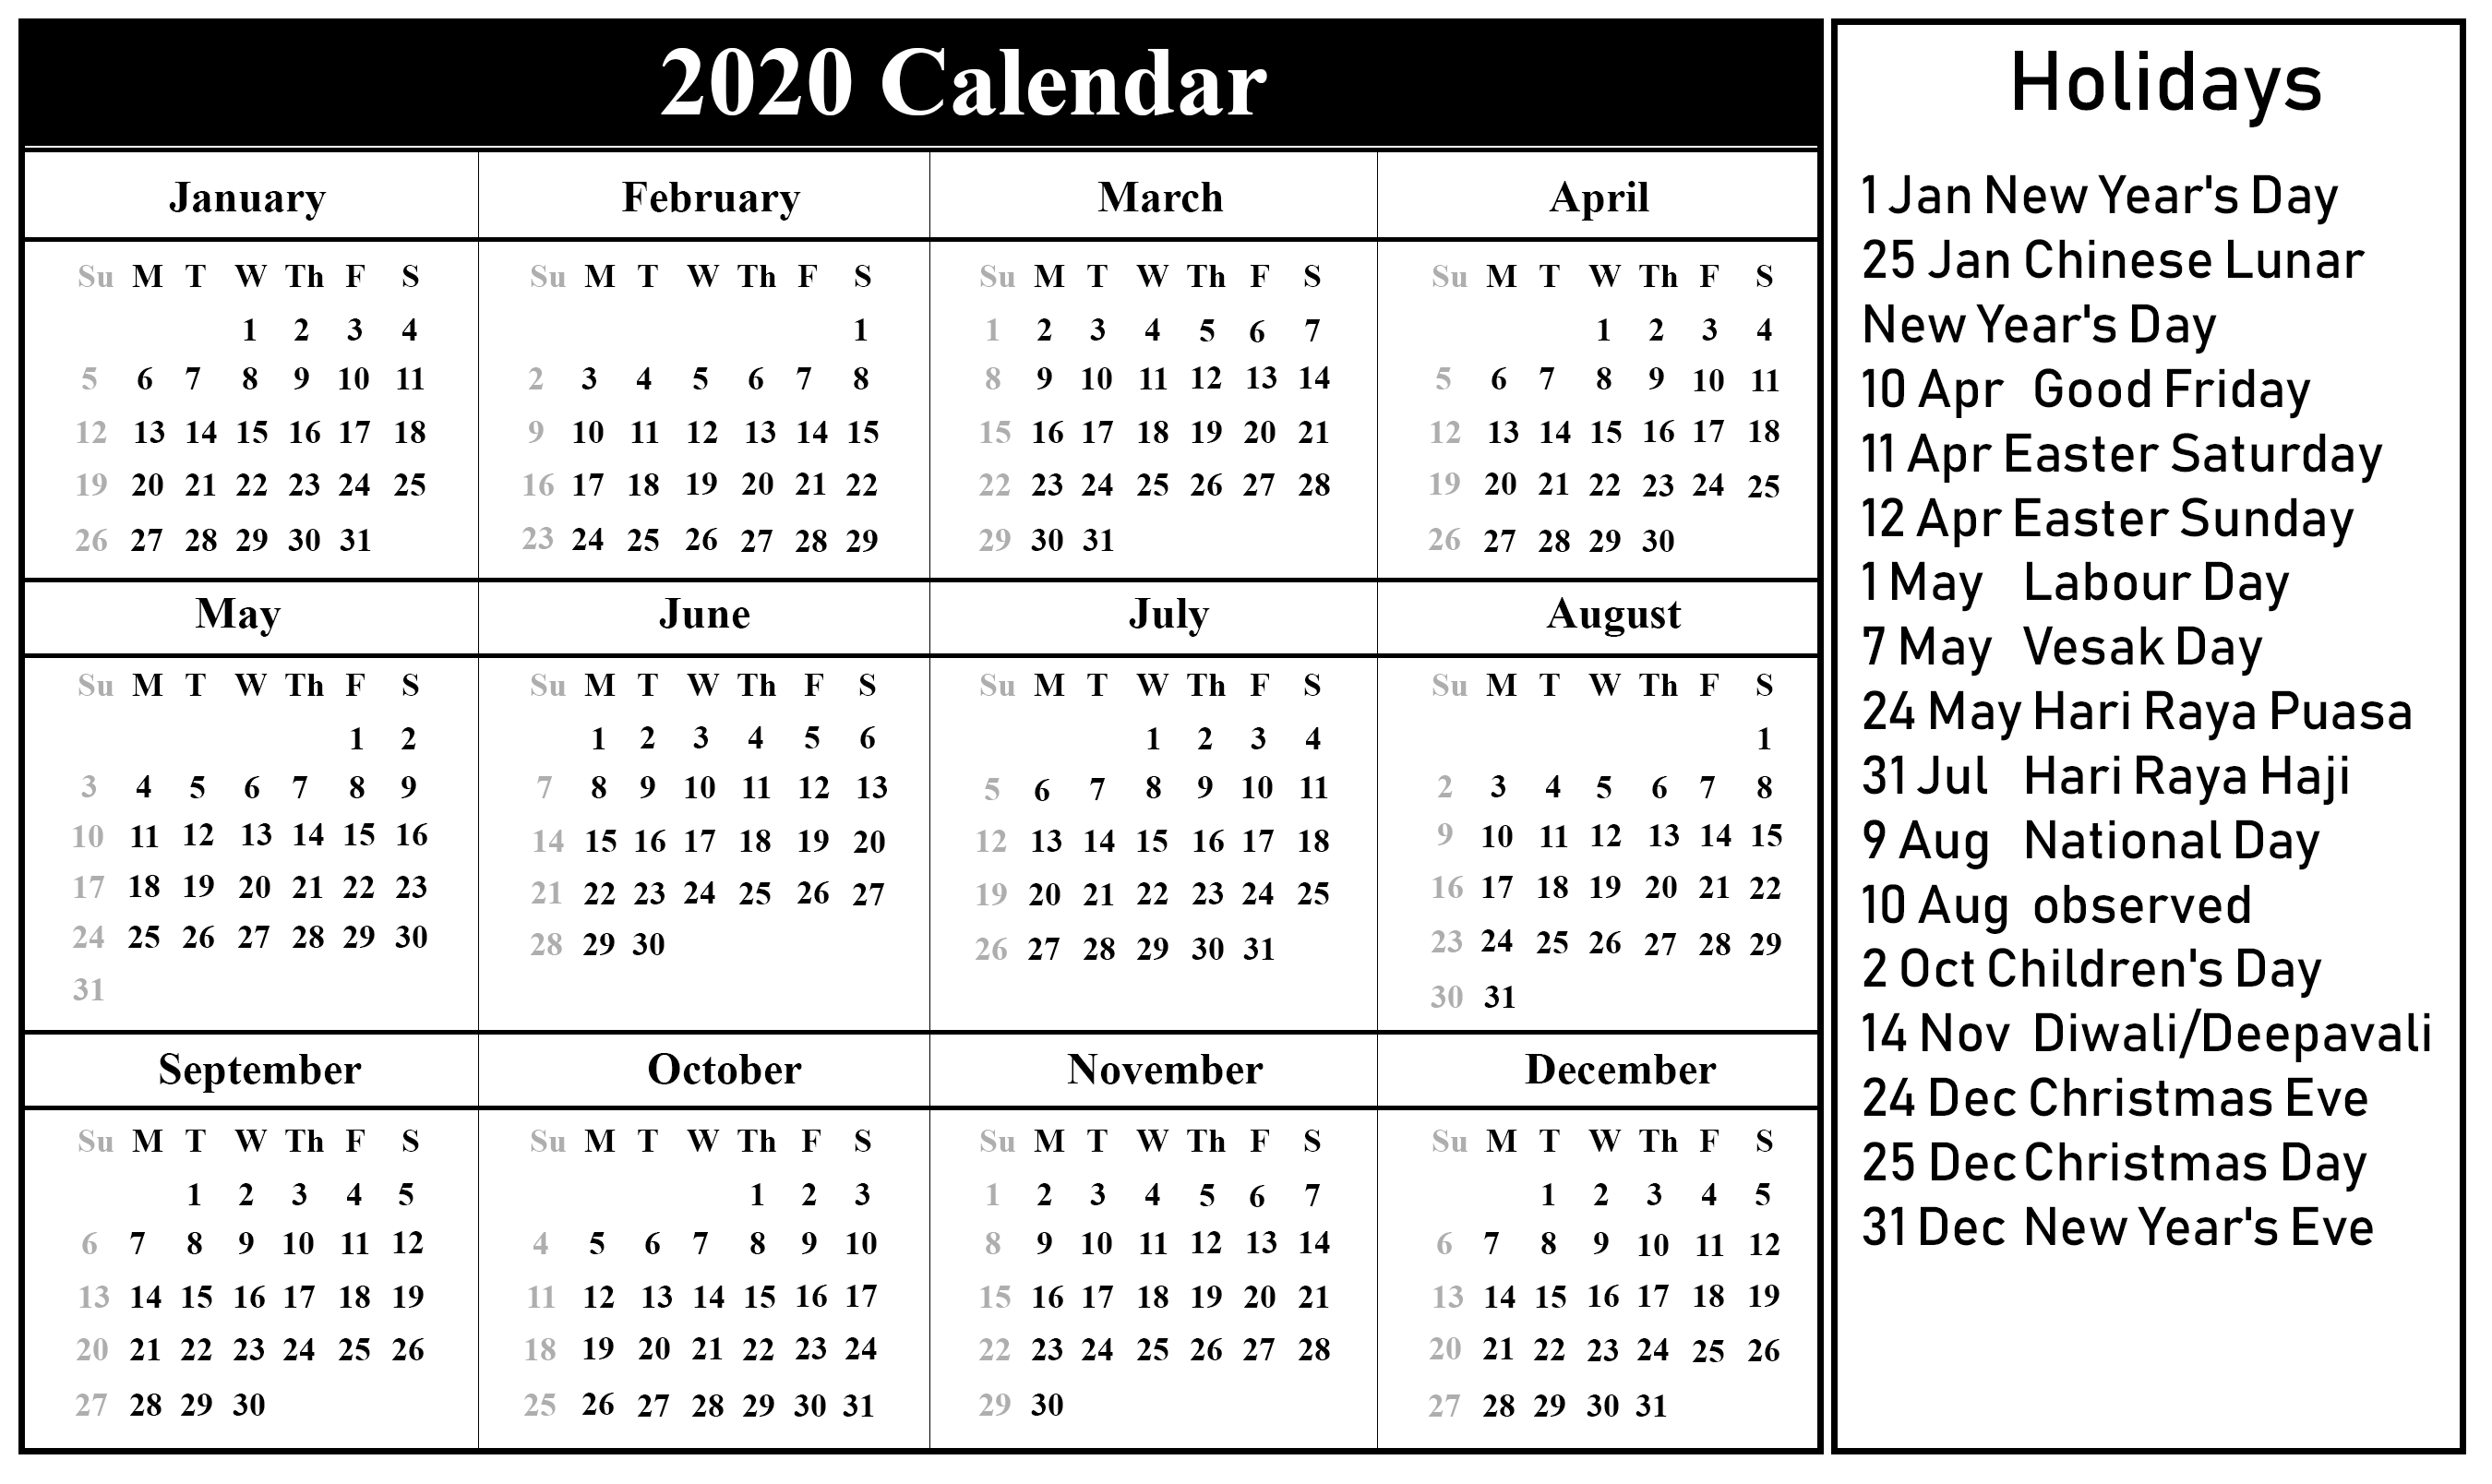 photograph about Calendar 2020 Printable called Cost-free Printable Singapore 2020 Calendar With Vacations In just PDF